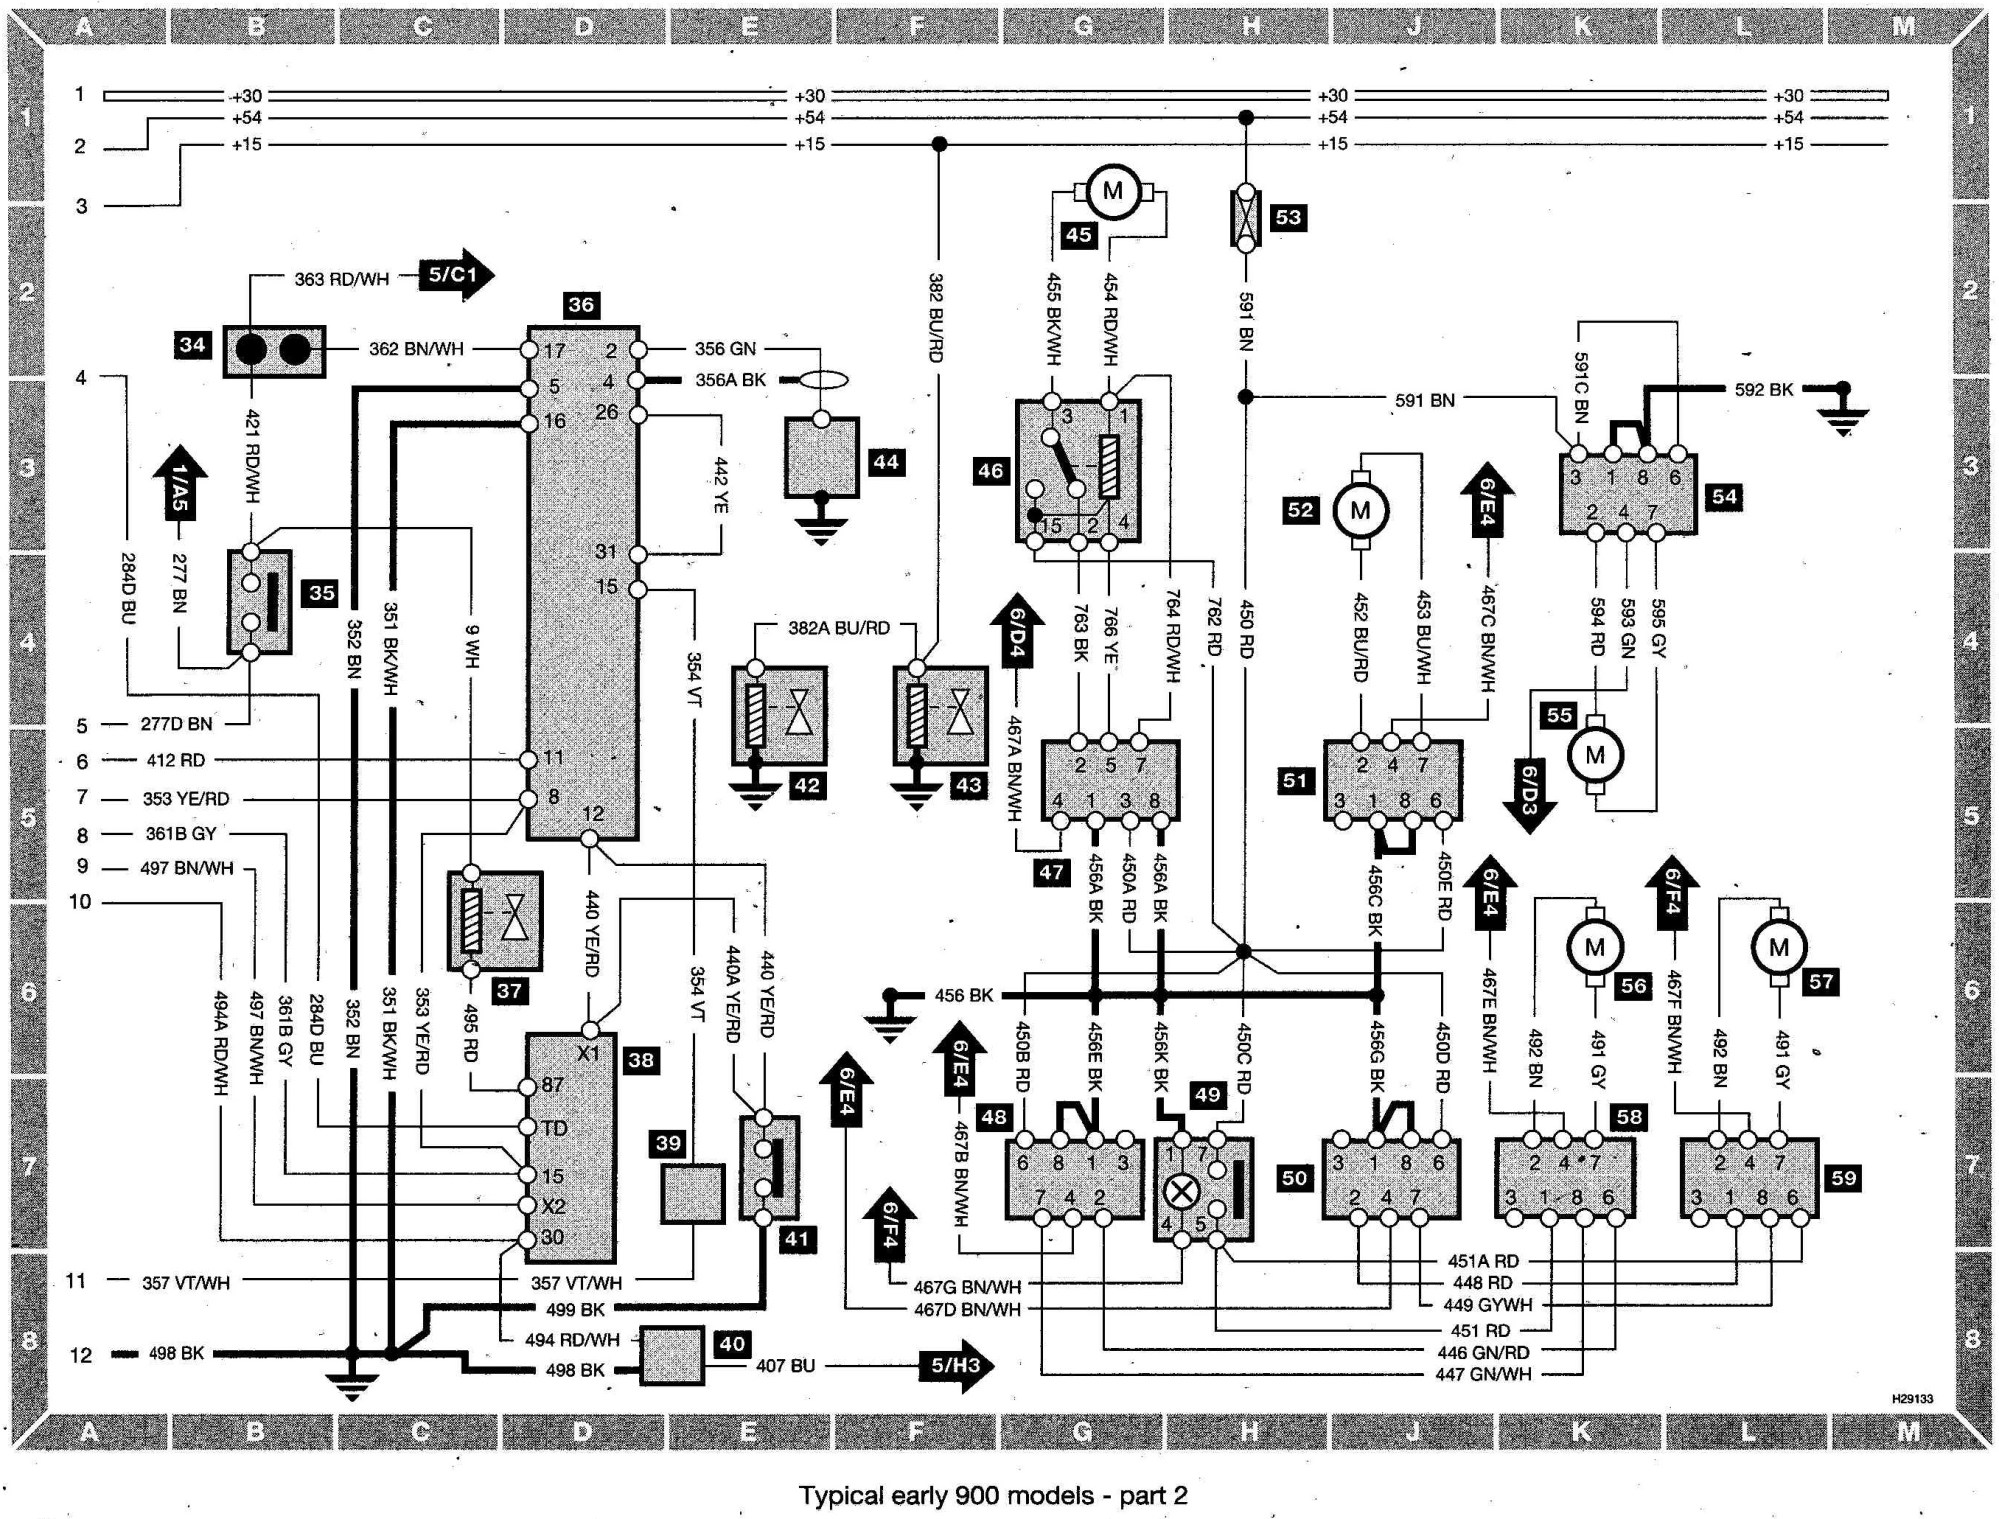 hight resolution of saab lights wiring diagram wiring diagram today saab 900 brake lights wiring diagram saab lights wiring diagram